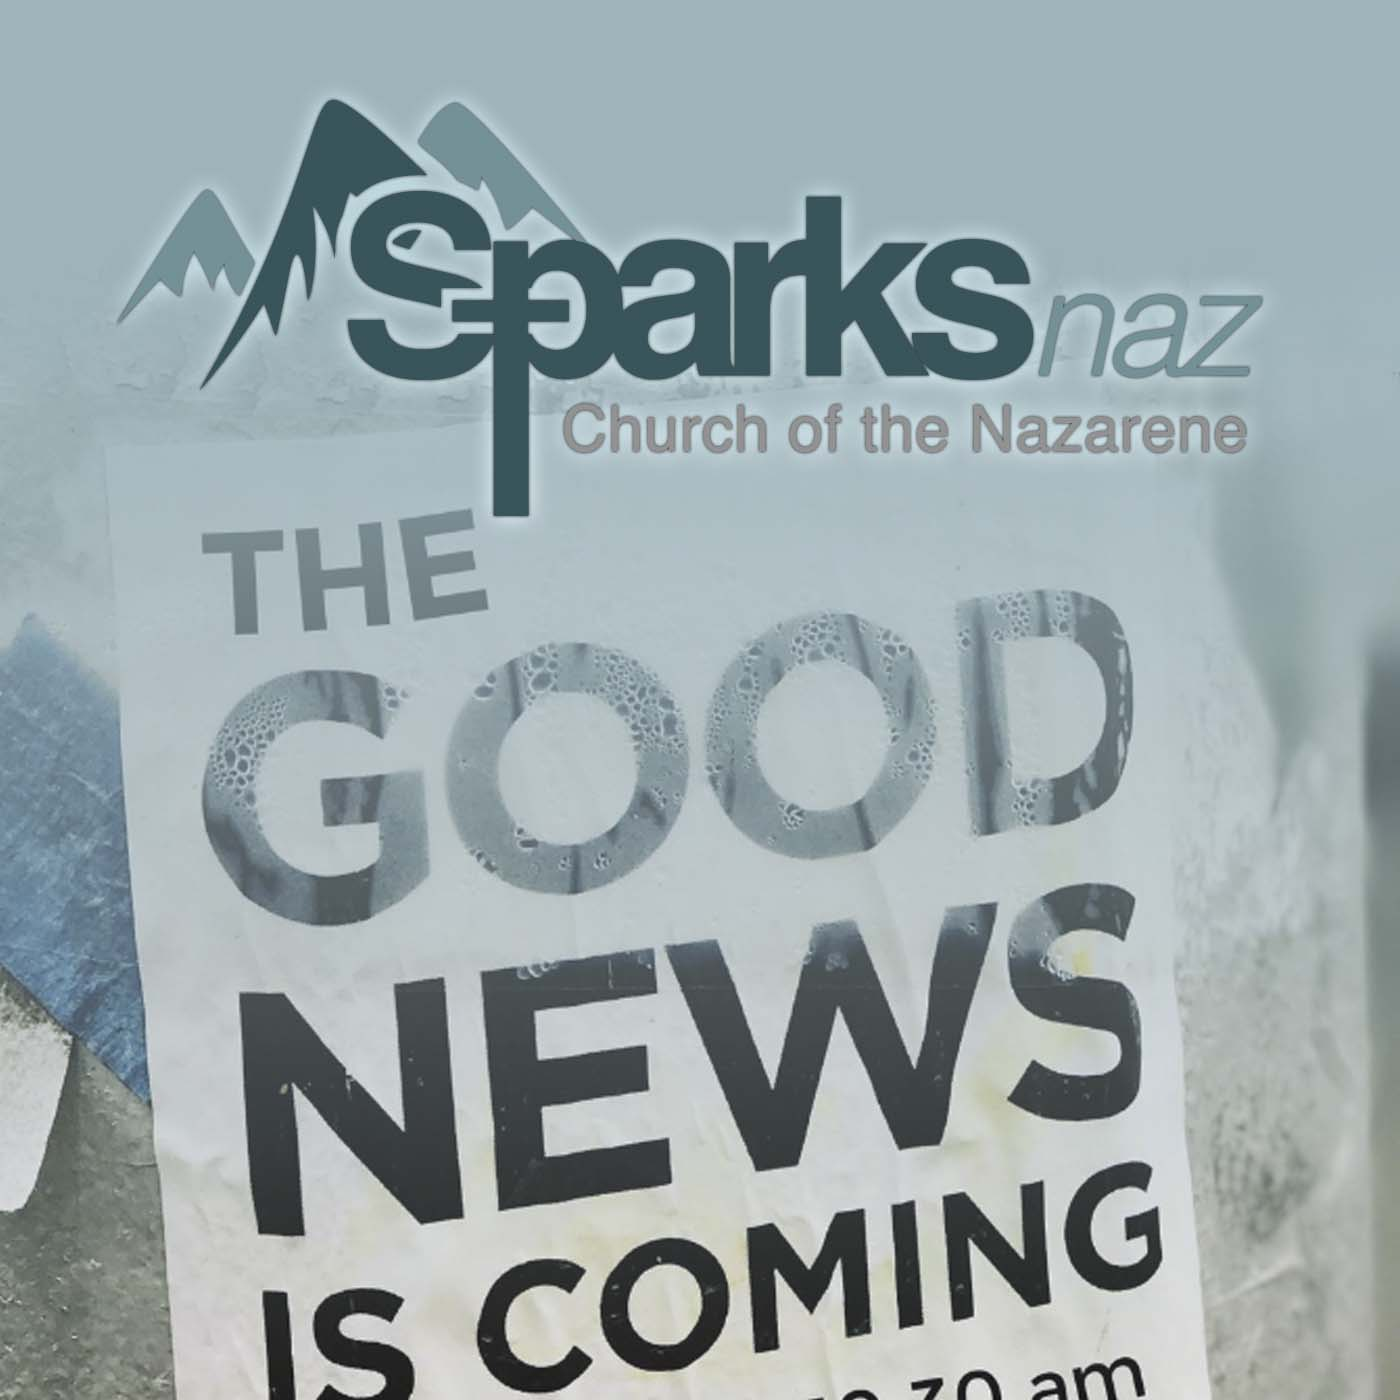 The Sparks Naz Podcast